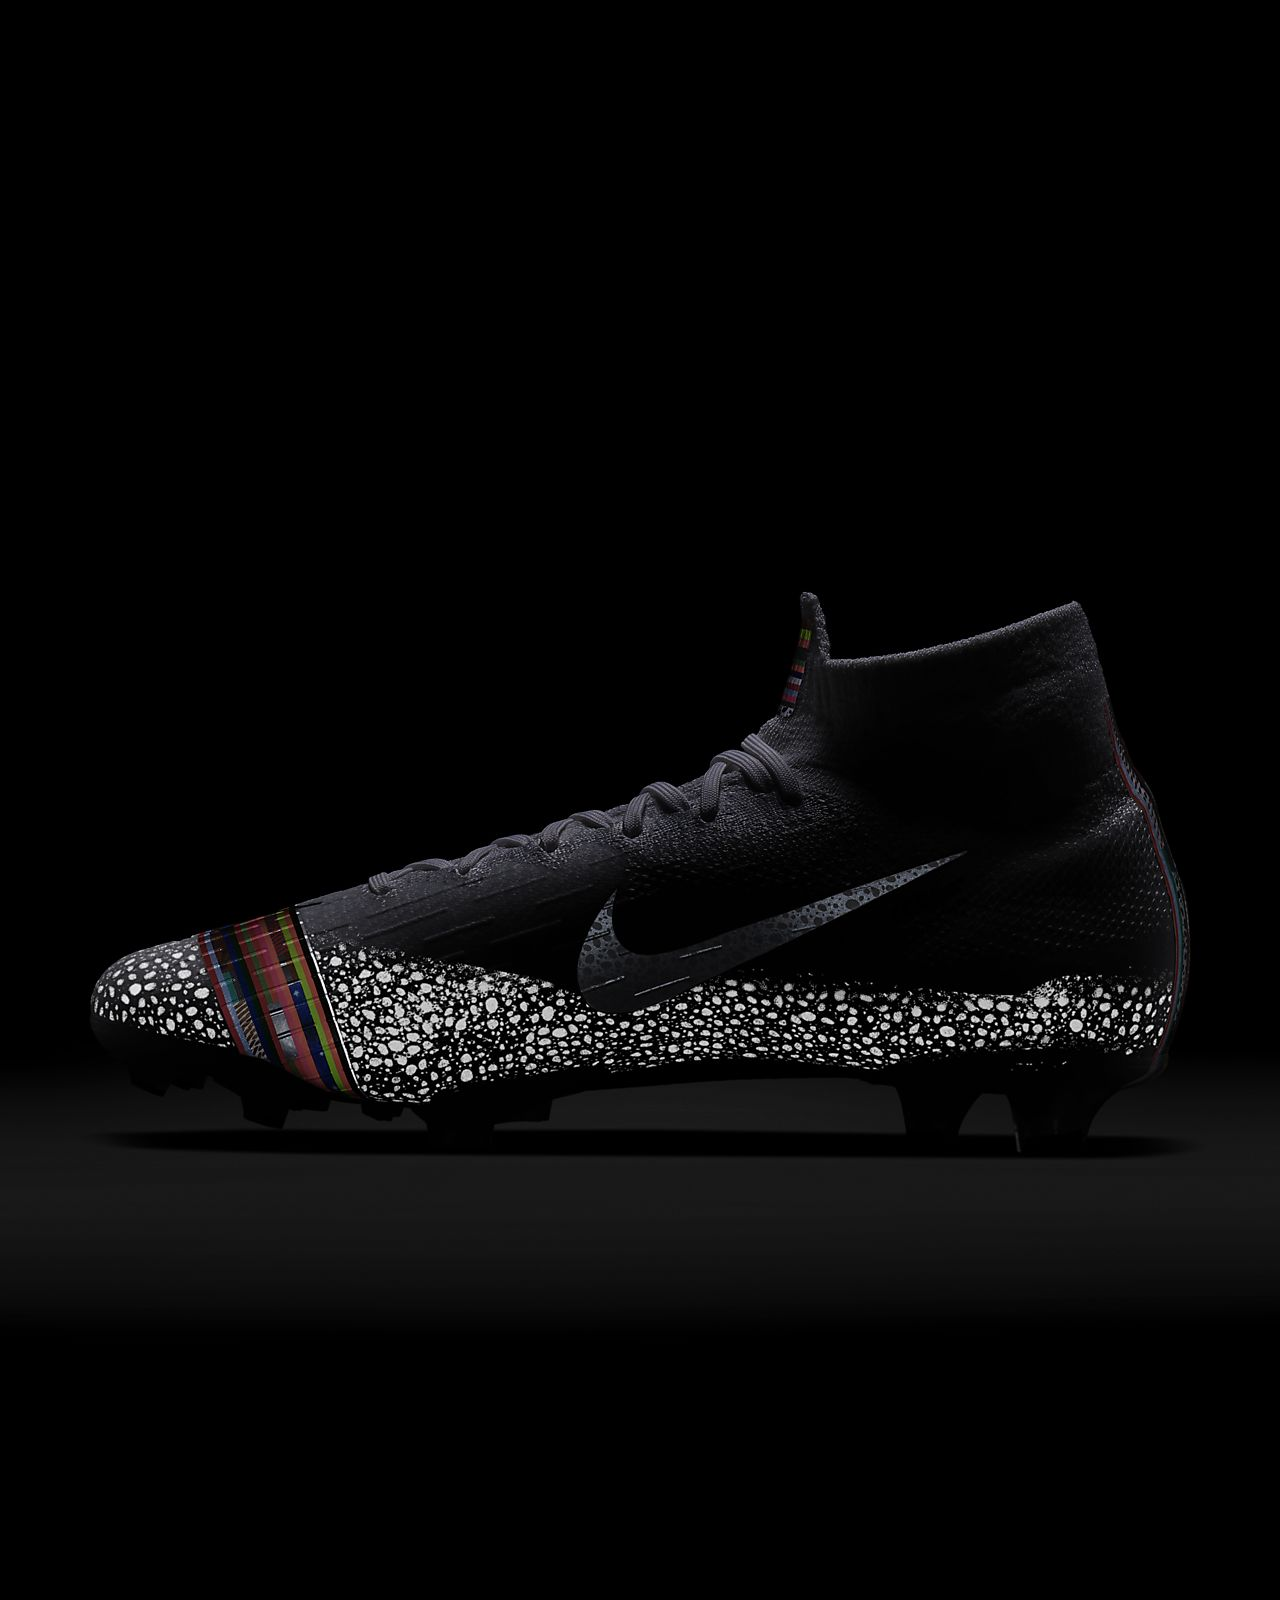 c62c9ae7d86 ... Nike Mercurial Superfly 360 Elite LVL UP SE FG Firm-Ground Football Boot